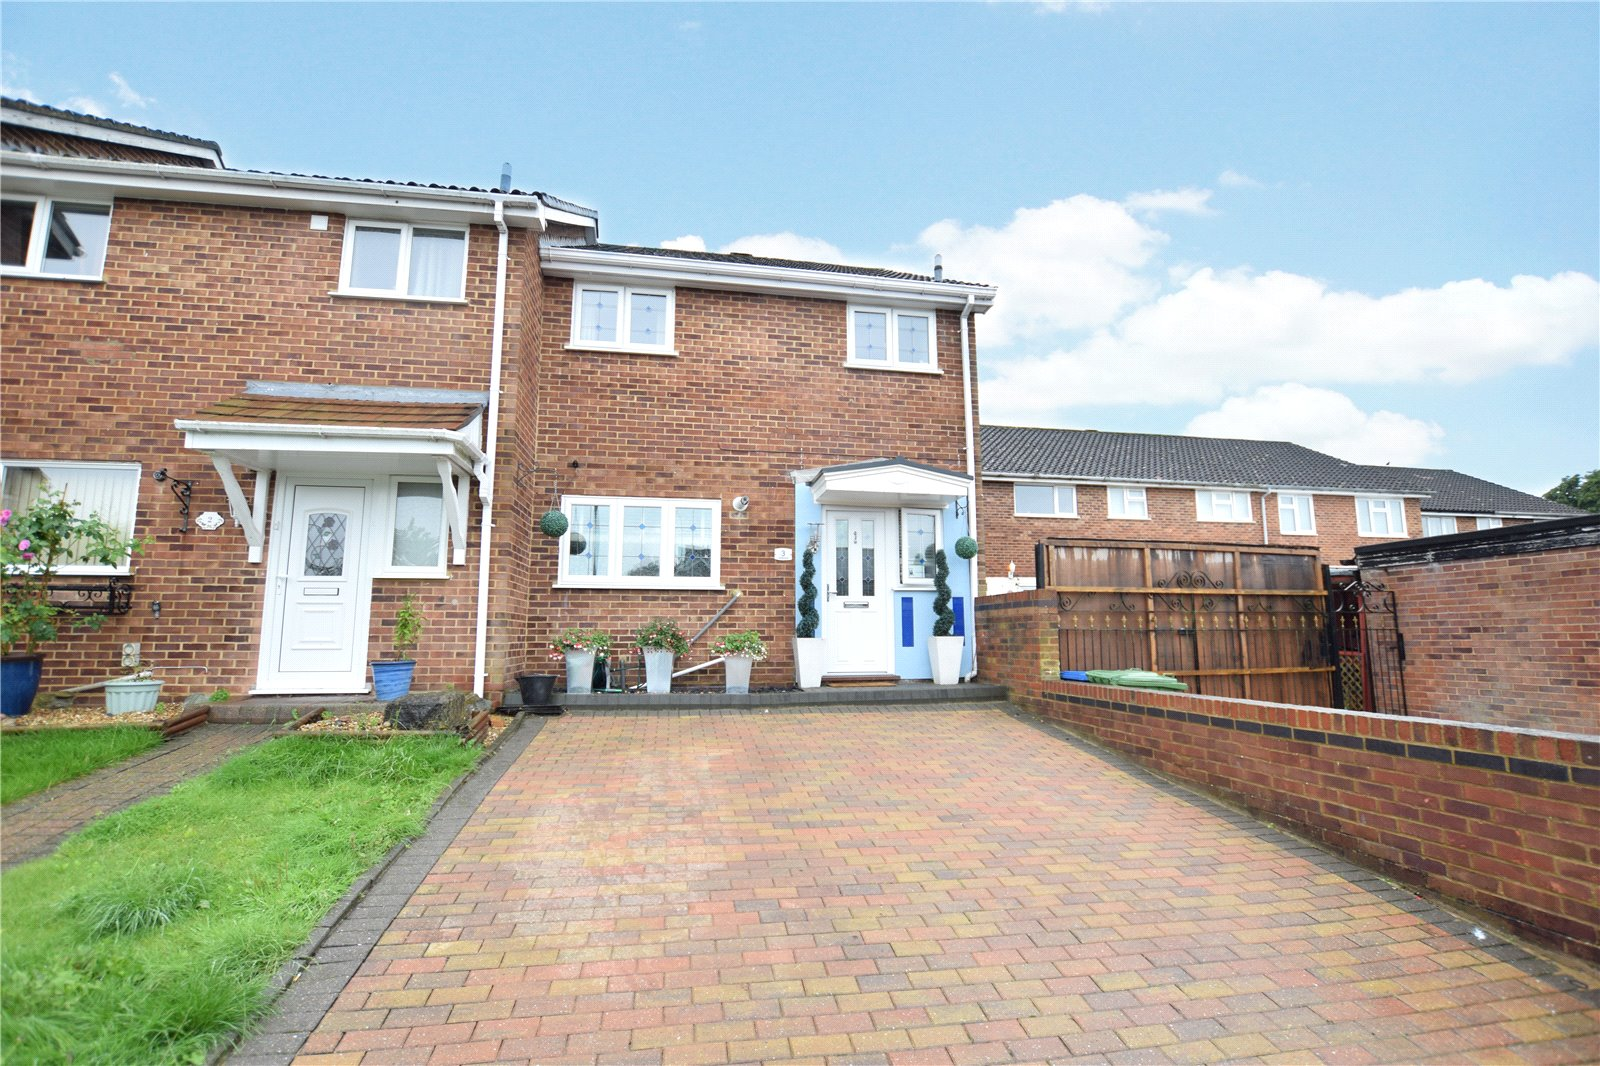 3 Bedrooms End Of Terrace House for sale in Carnoustie, Bracknell, Berkshire, RG12